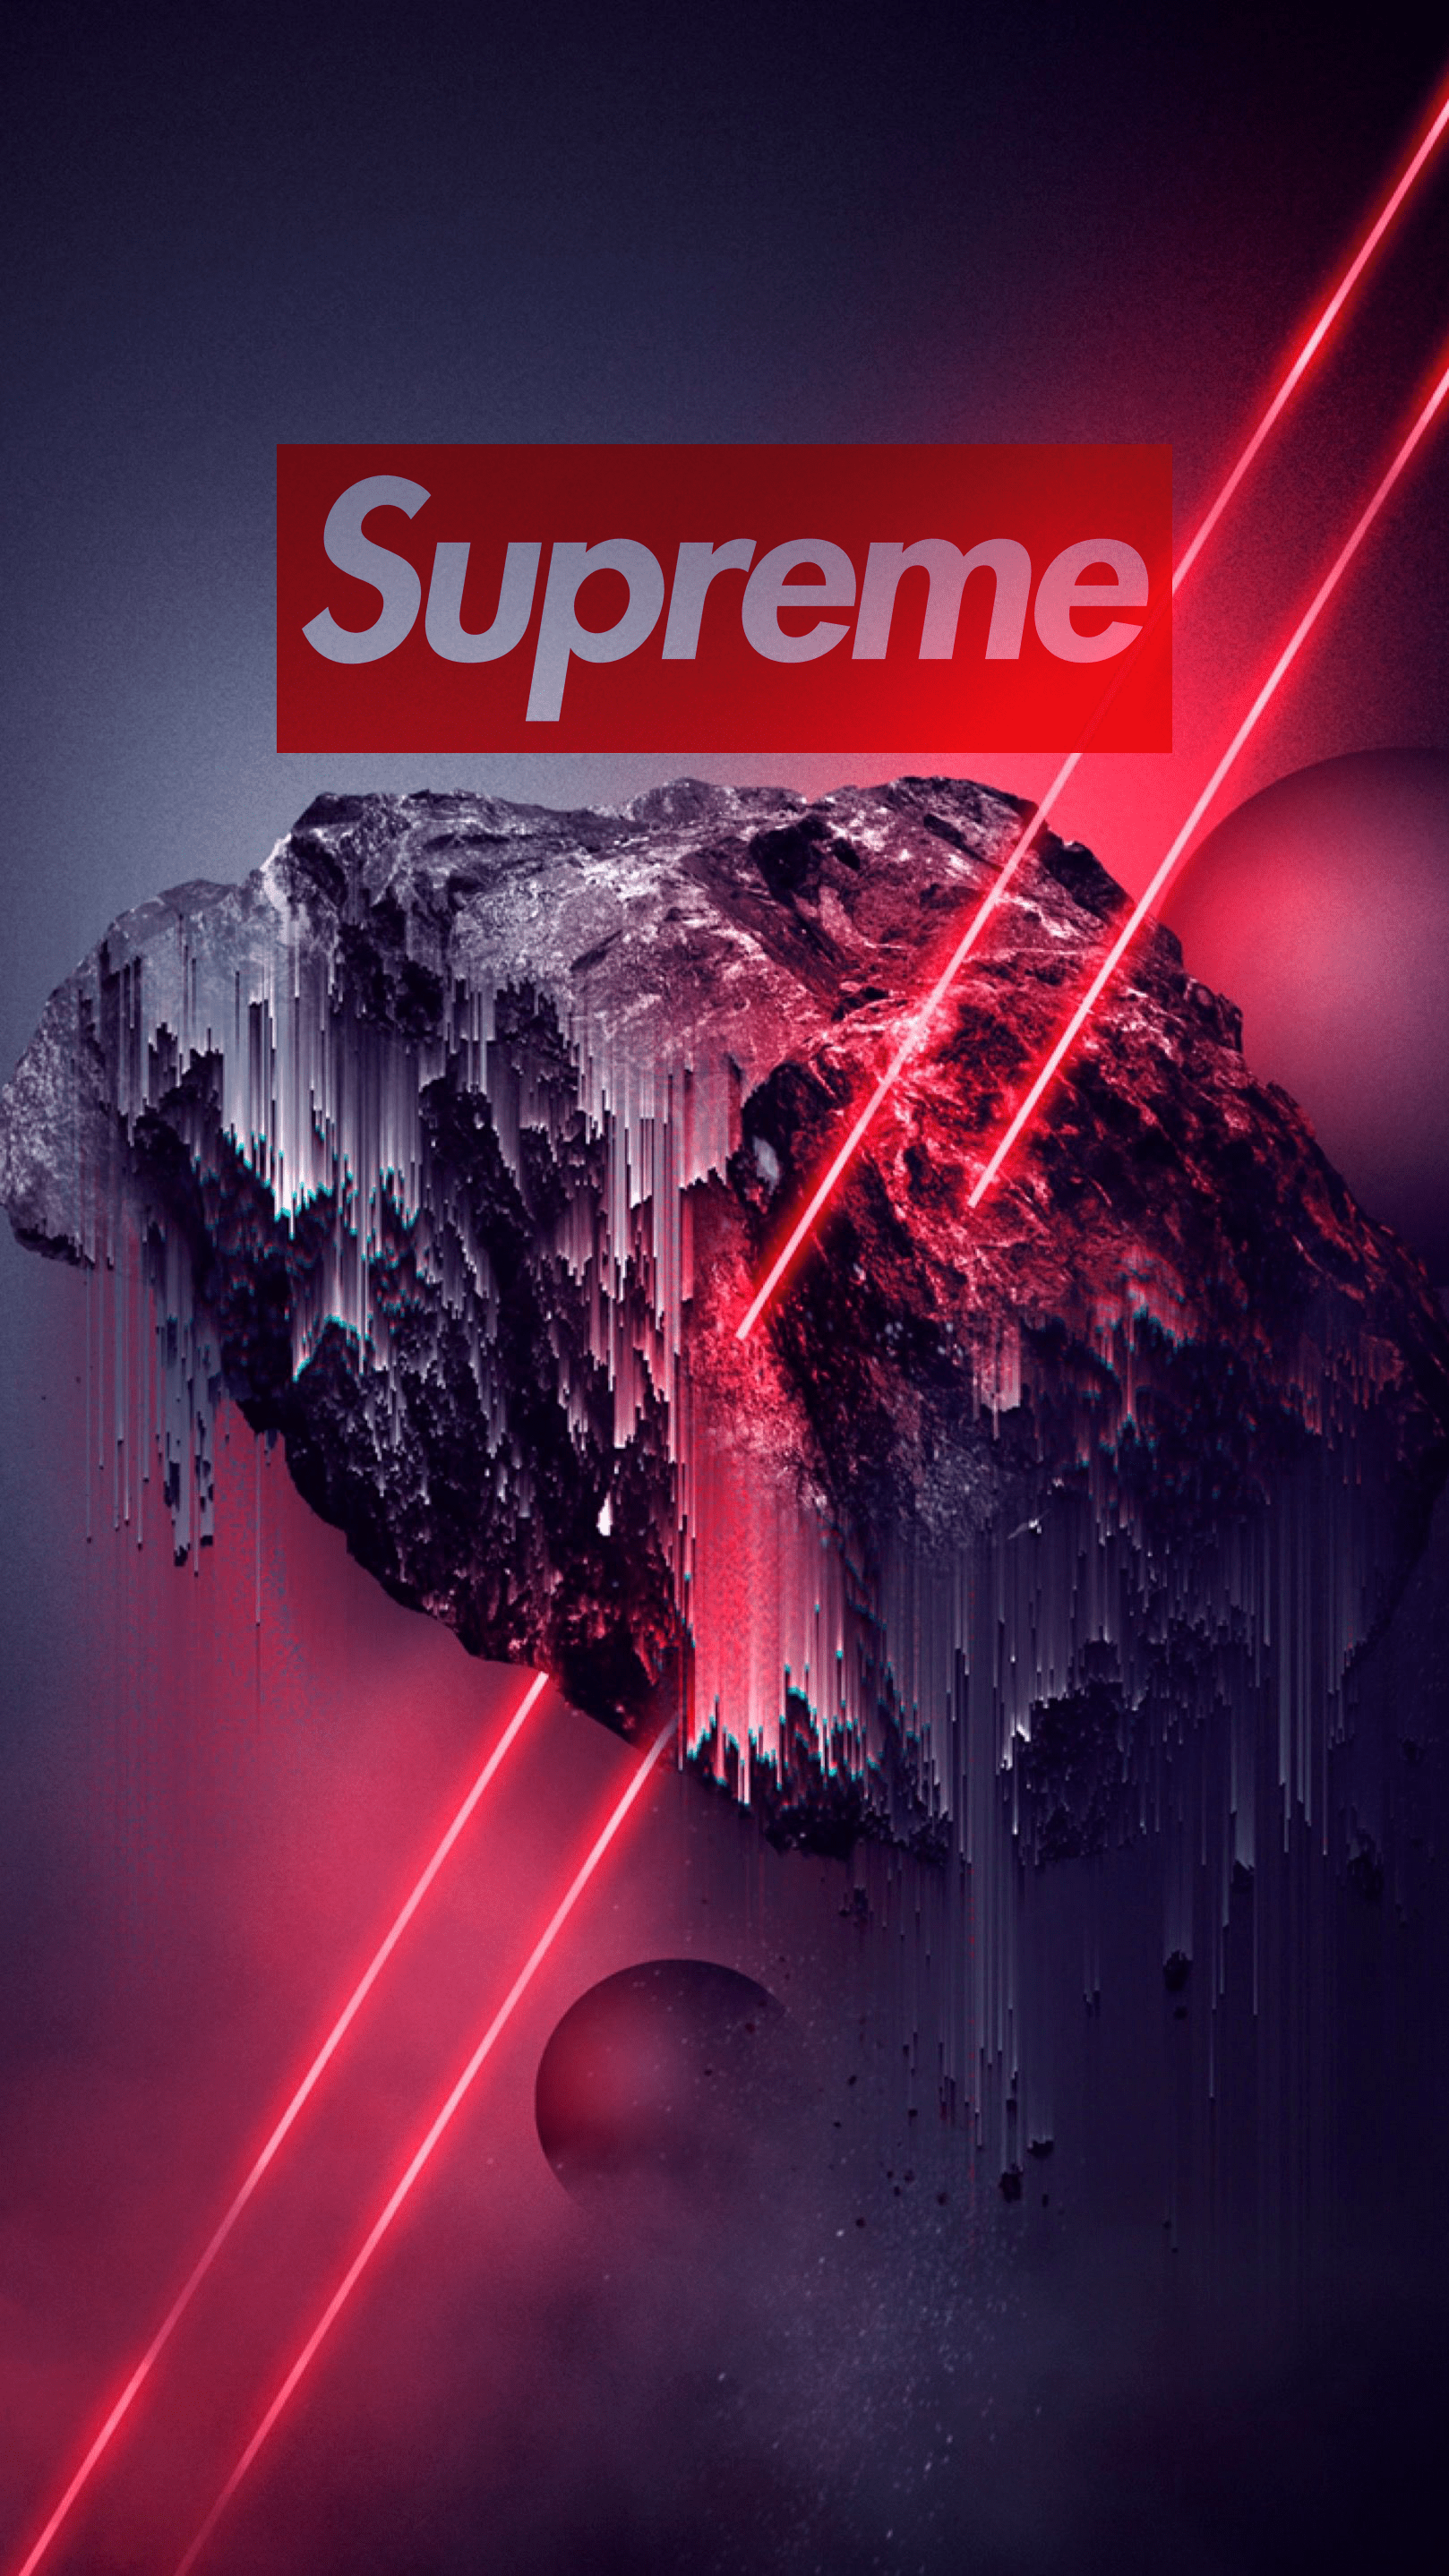 45+] Supreme iPhone Wallpaper Live on